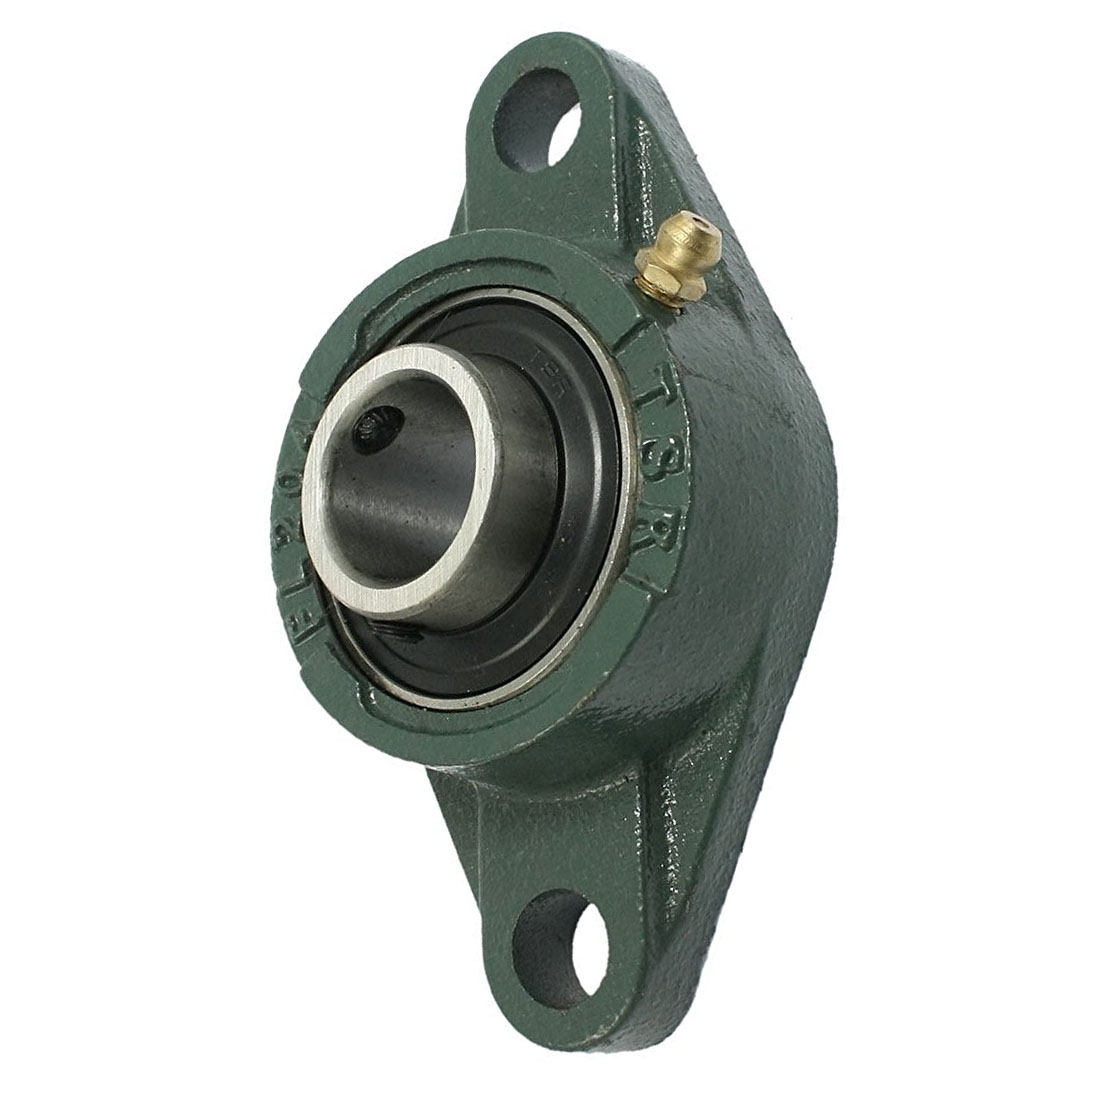 JFBL Hot FL204 20mm Bore Self-aligning Flange Bearing UC204 mochu 23134 23134ca 23134ca w33 170x280x88 3003734 3053734hk spherical roller bearings self aligning cylindrical bore